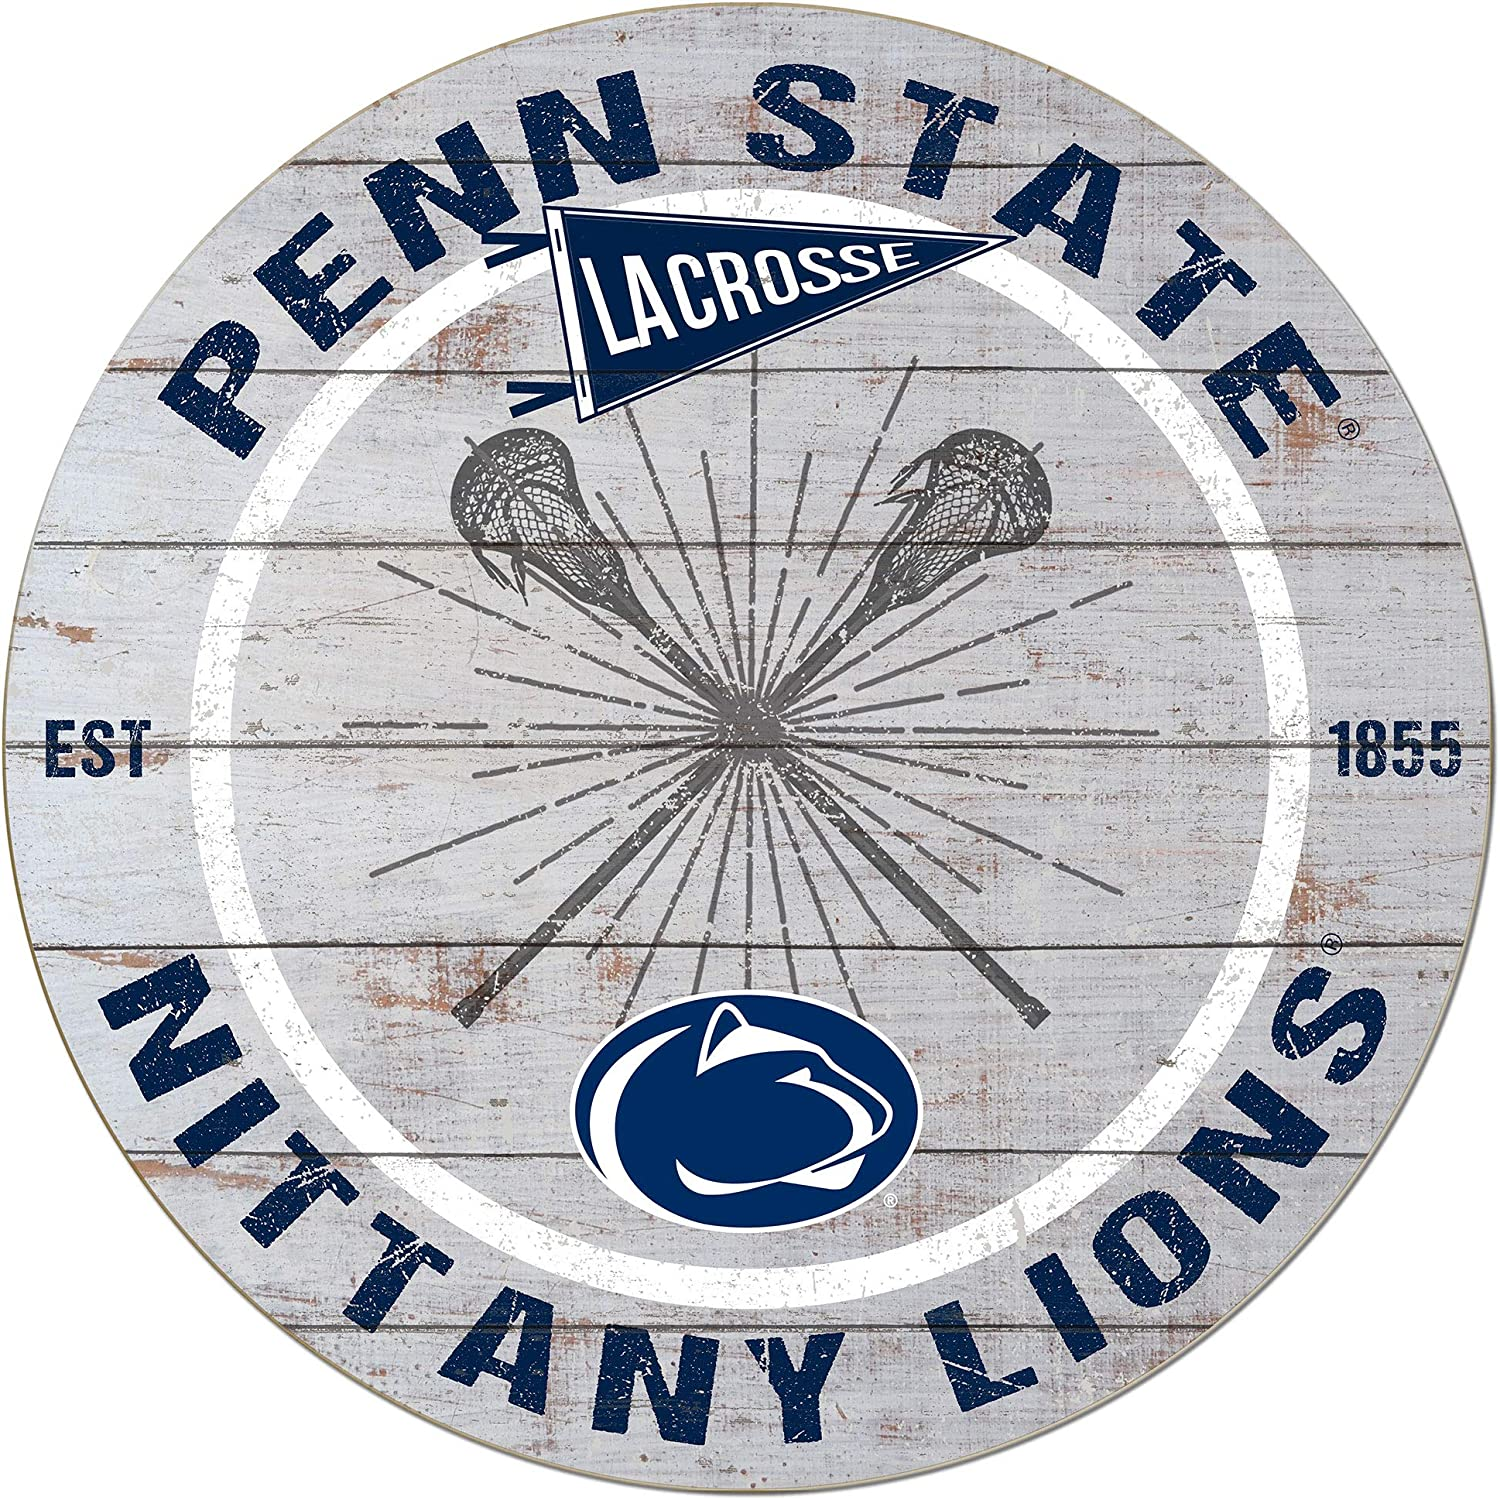 KH Sports Fan 20x20 Weathered Circle Throwback Penn State Nittany Lions Lacrosse